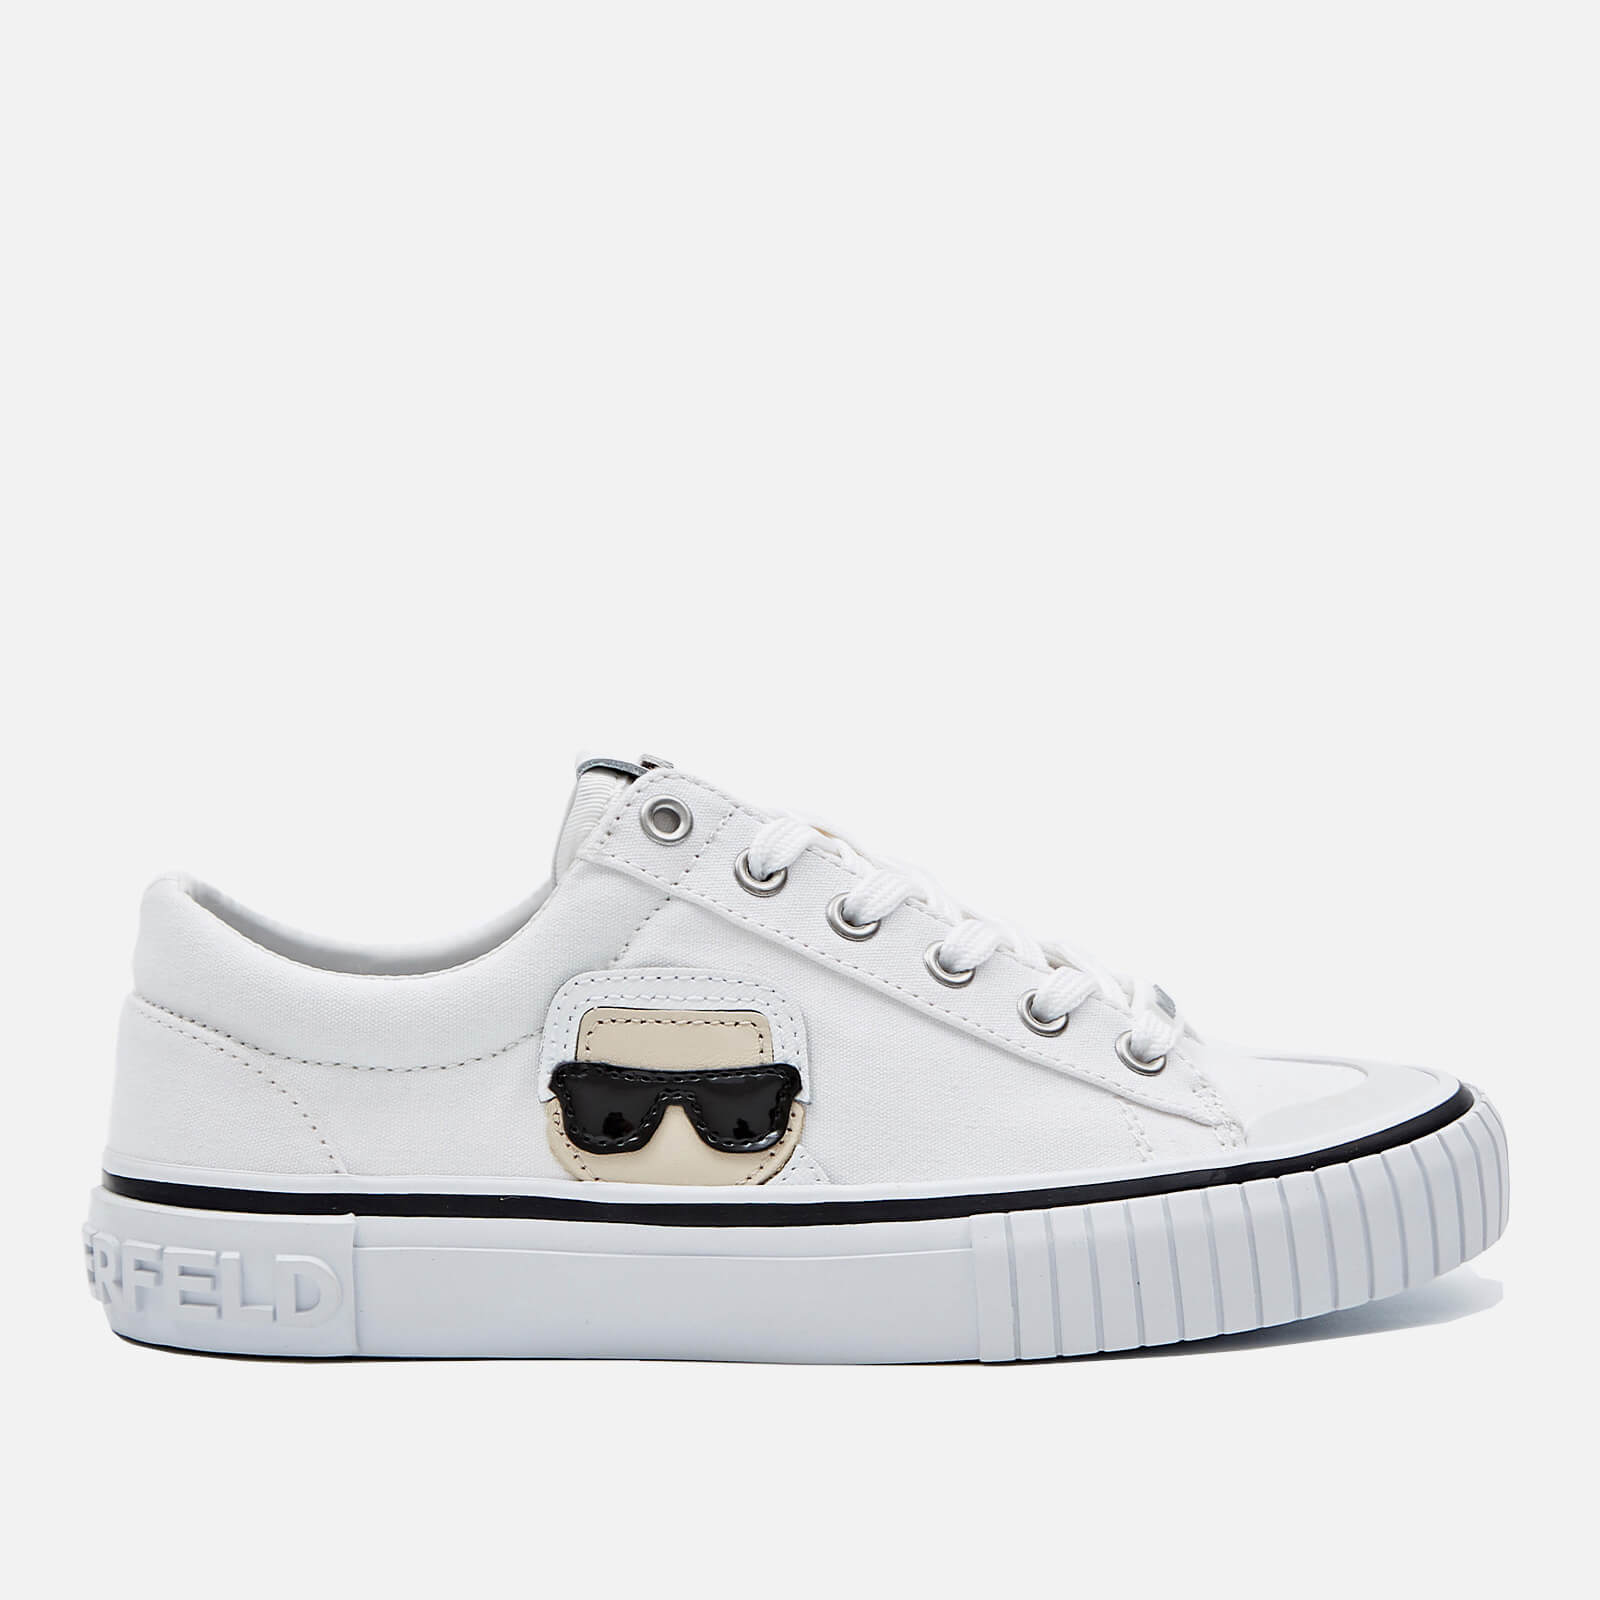 Karl Lagerfeld Womens Kampus Ii Canvas Low Top Trainers White Uk 3